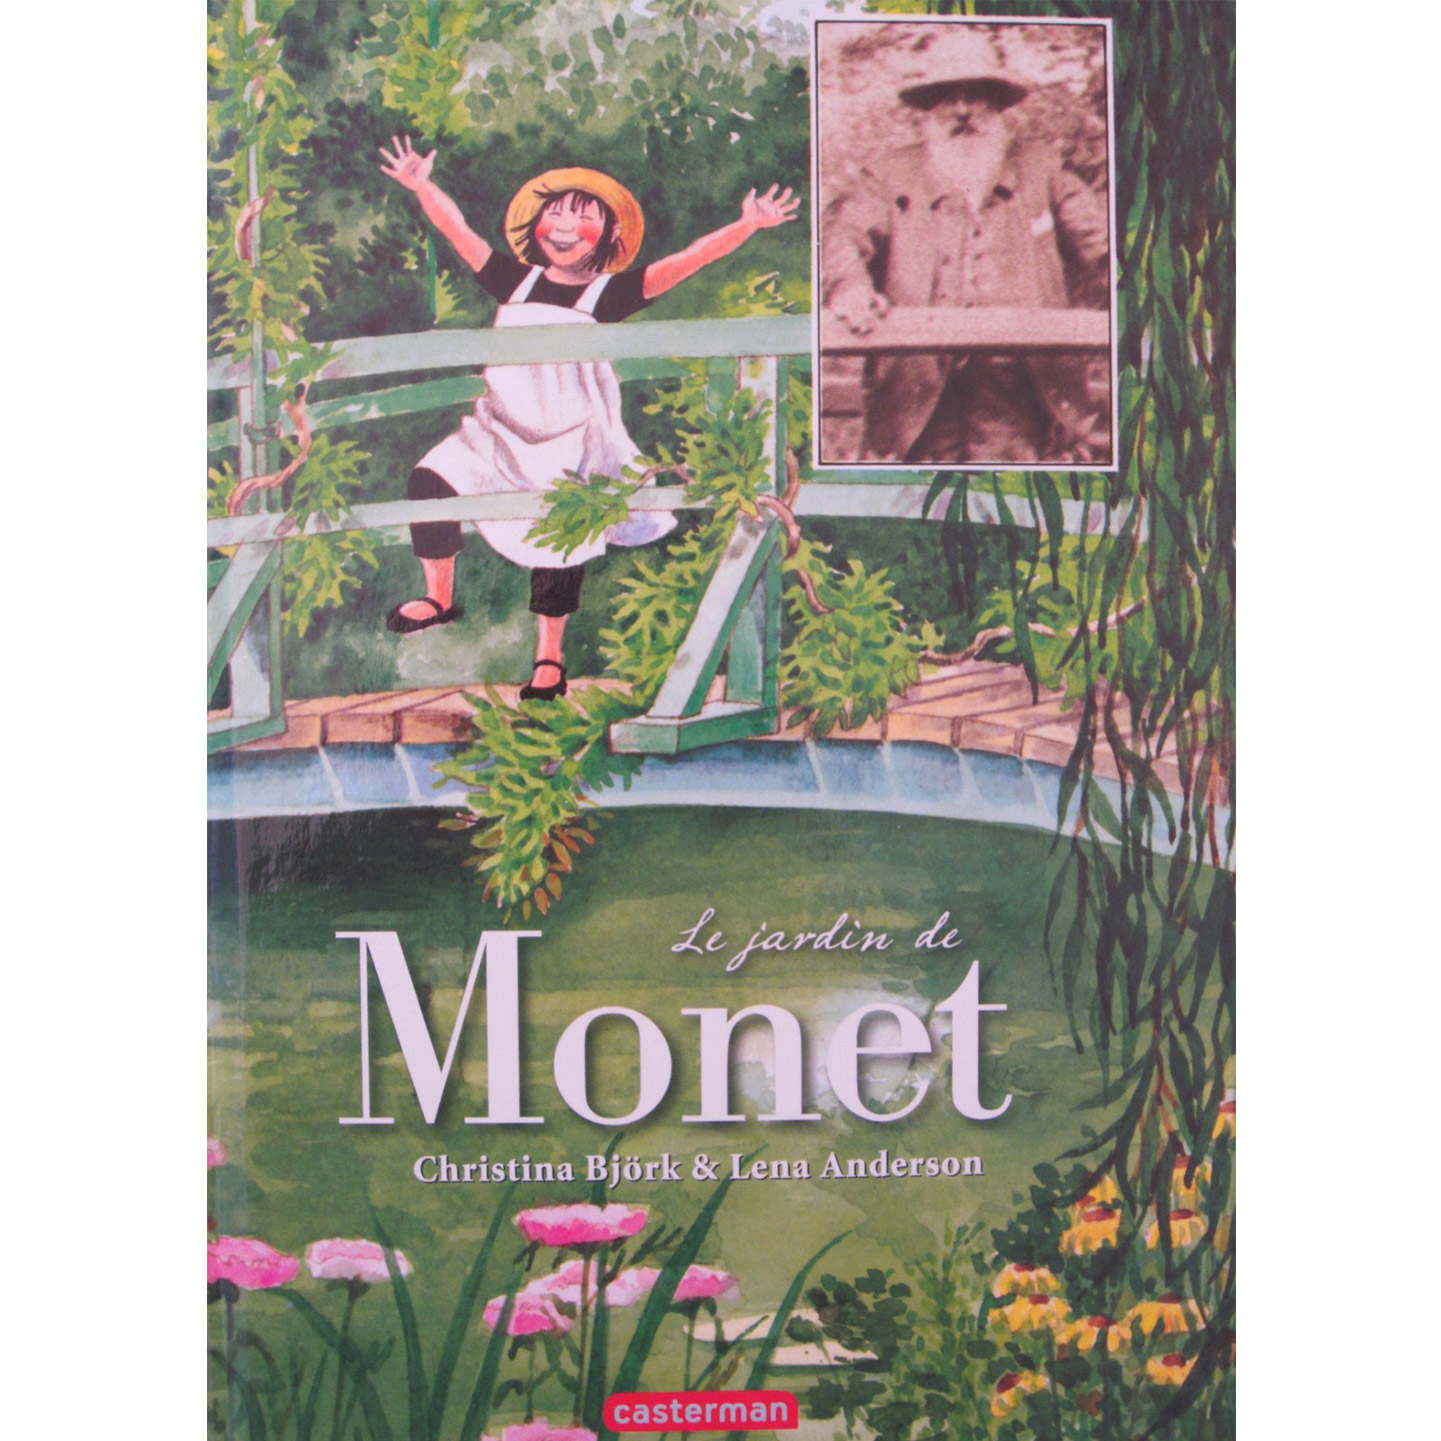 Fondation claude monet le jardin de monet fondation for Jardines monet